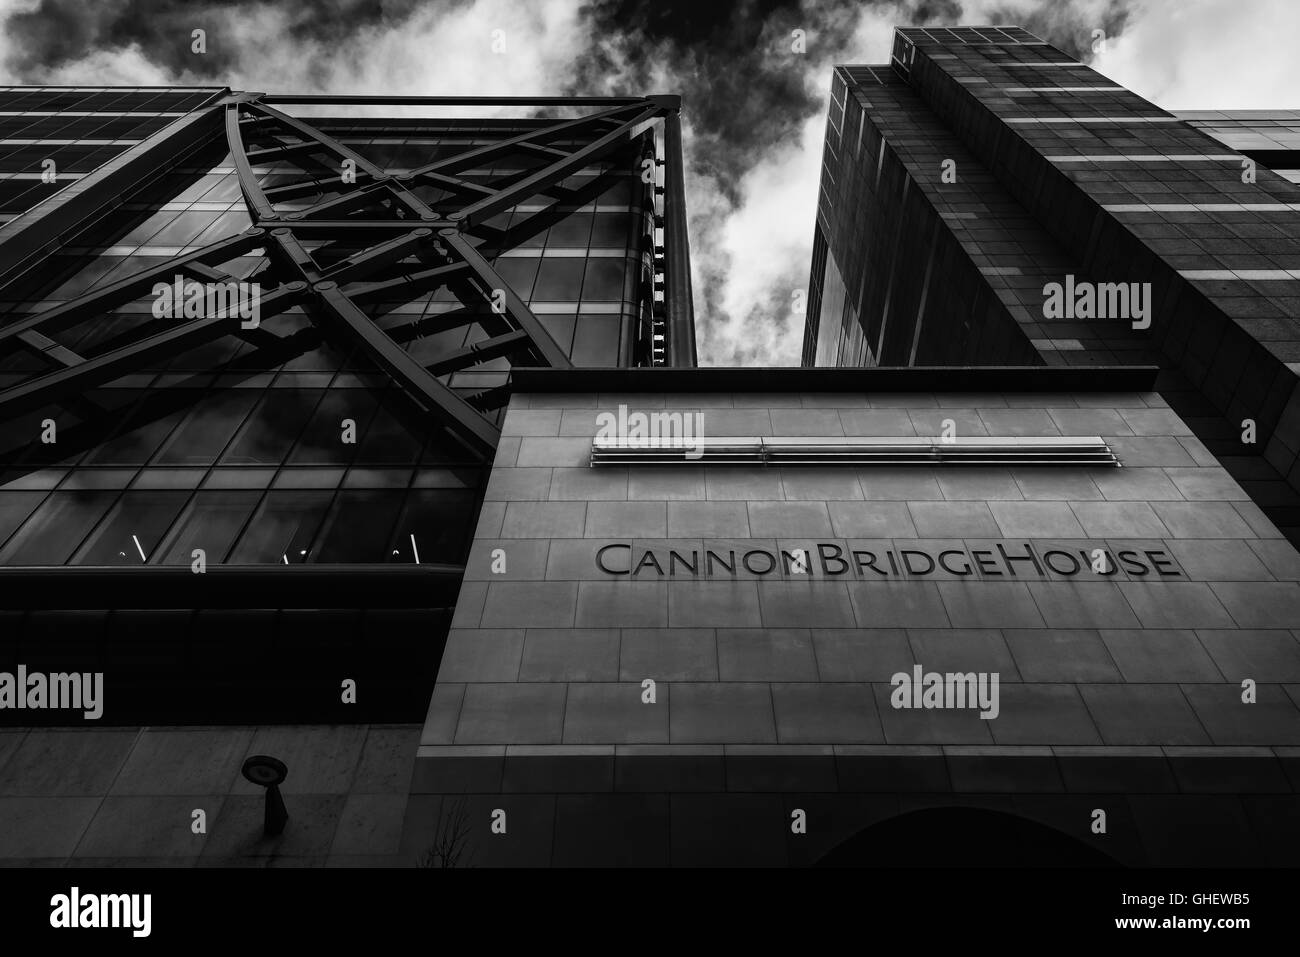 Cannon Bridge House office building in the City of London, London, United Kingdom - Stock Image